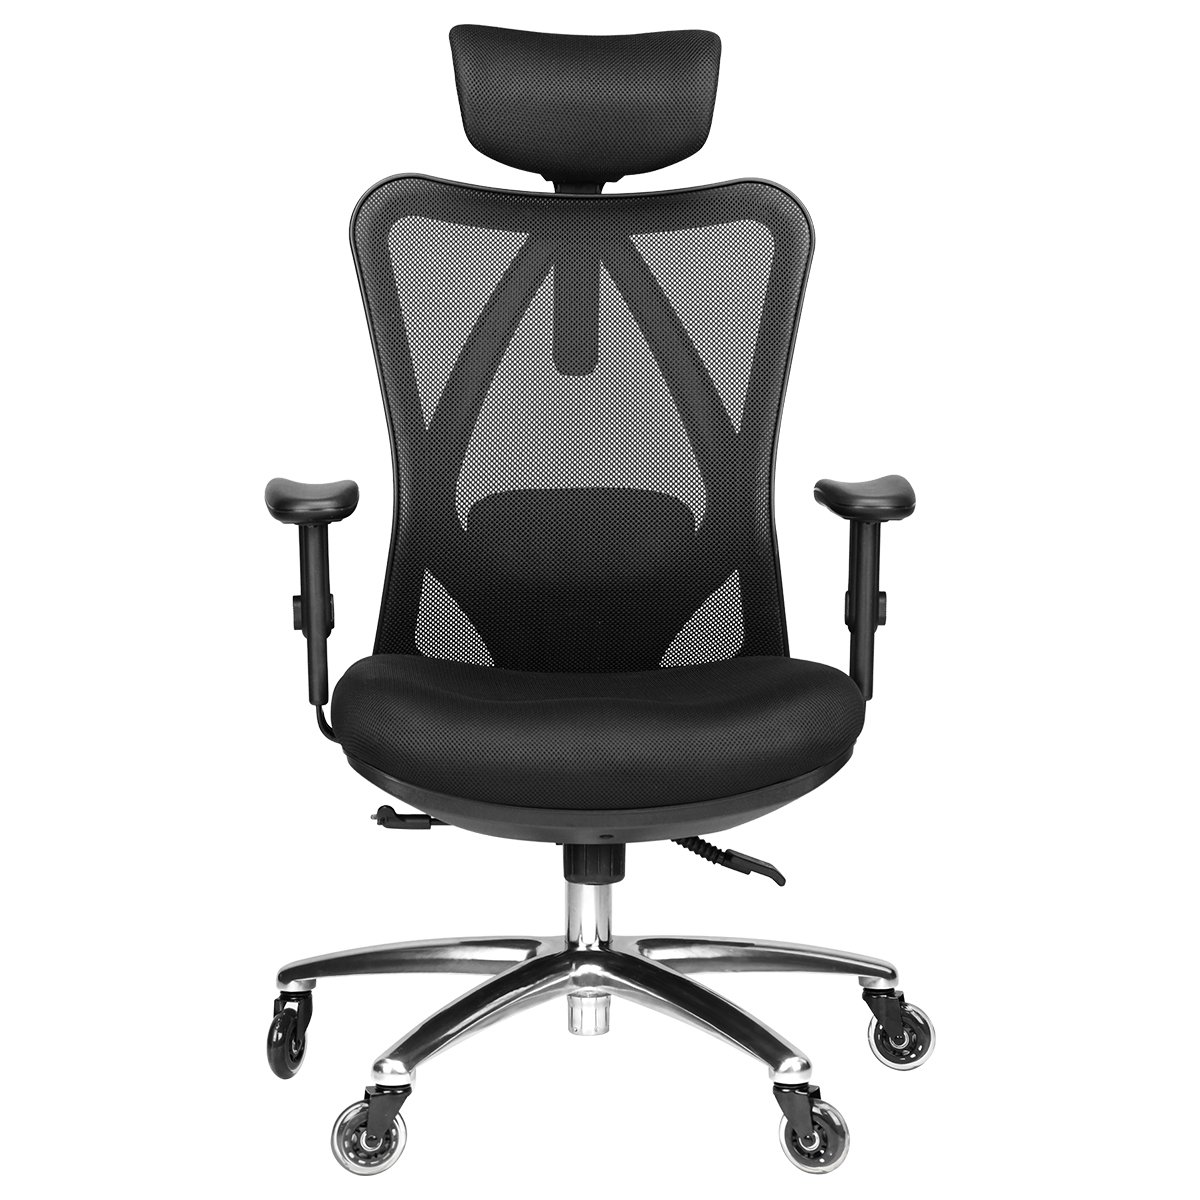 Duramont Ergonomic Adjustable Office Chair with Lumbar Support and Rollerblade Wheels - High Back with Breathable Mesh - Thick Seat Cushion - Adjustable Head & Arm Rests, Seat Height - Reclines by Duramont